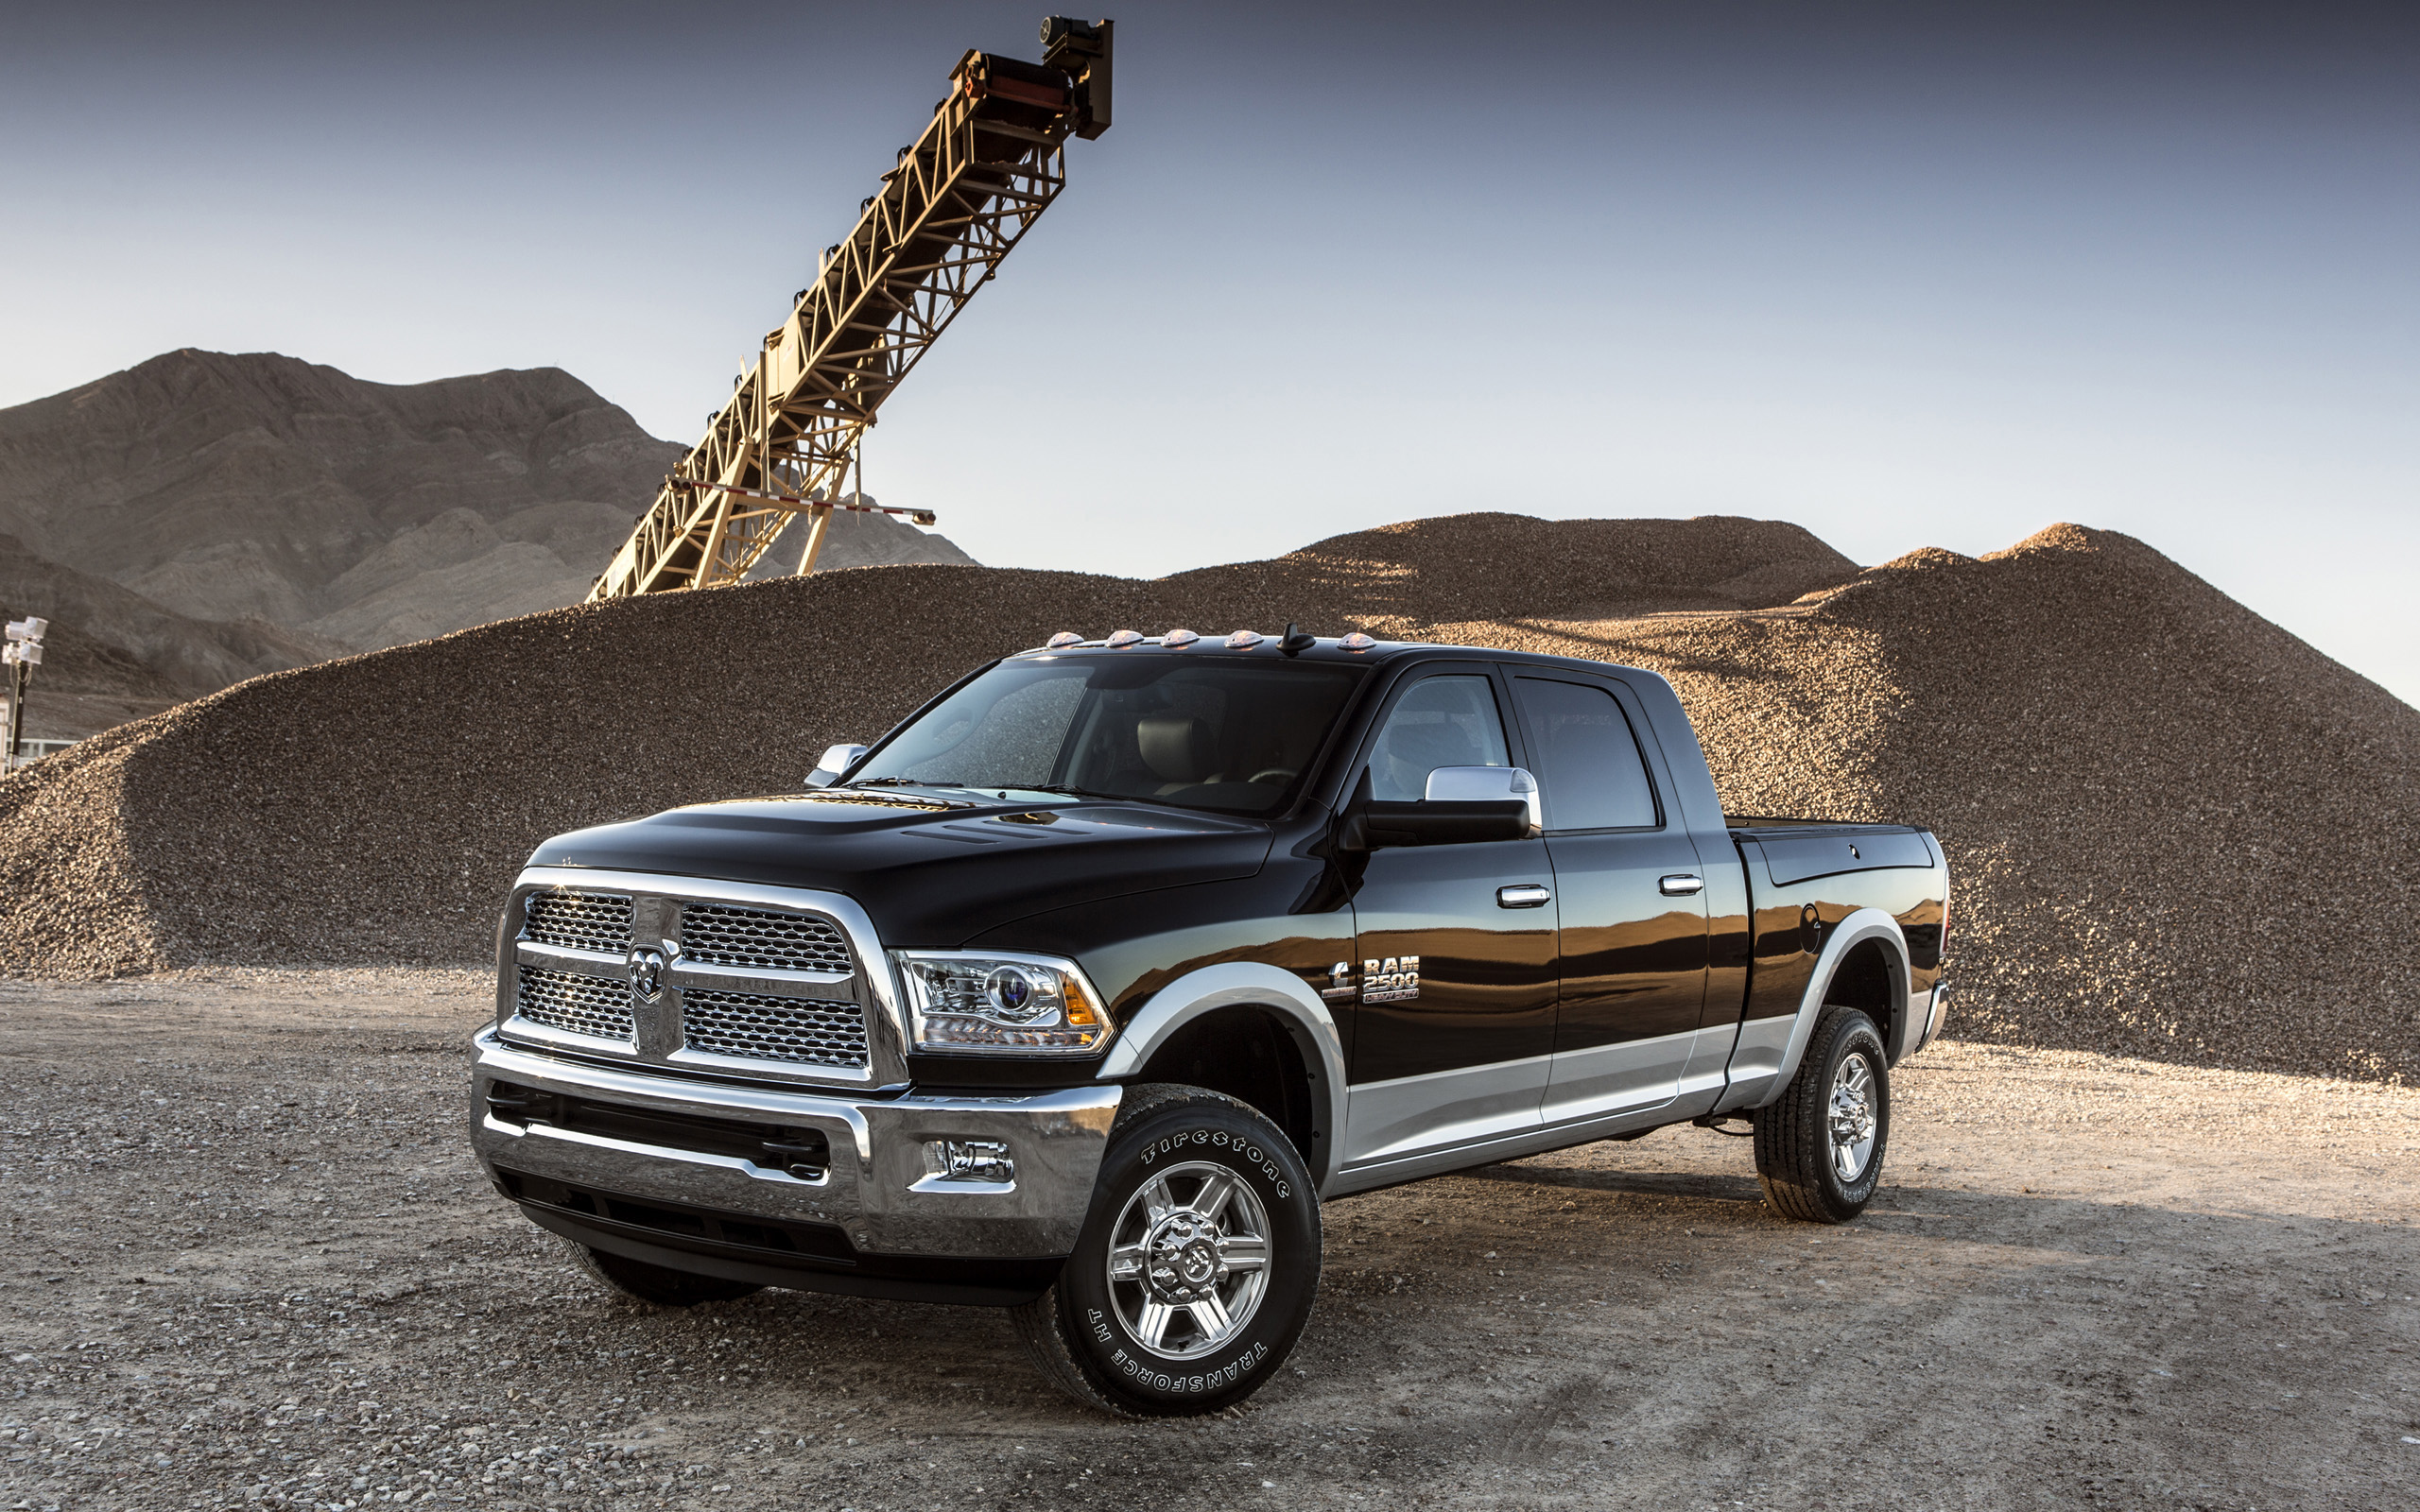 2013 Dodge Ram 2500 4x4 truck wallpaper background 2560x1600